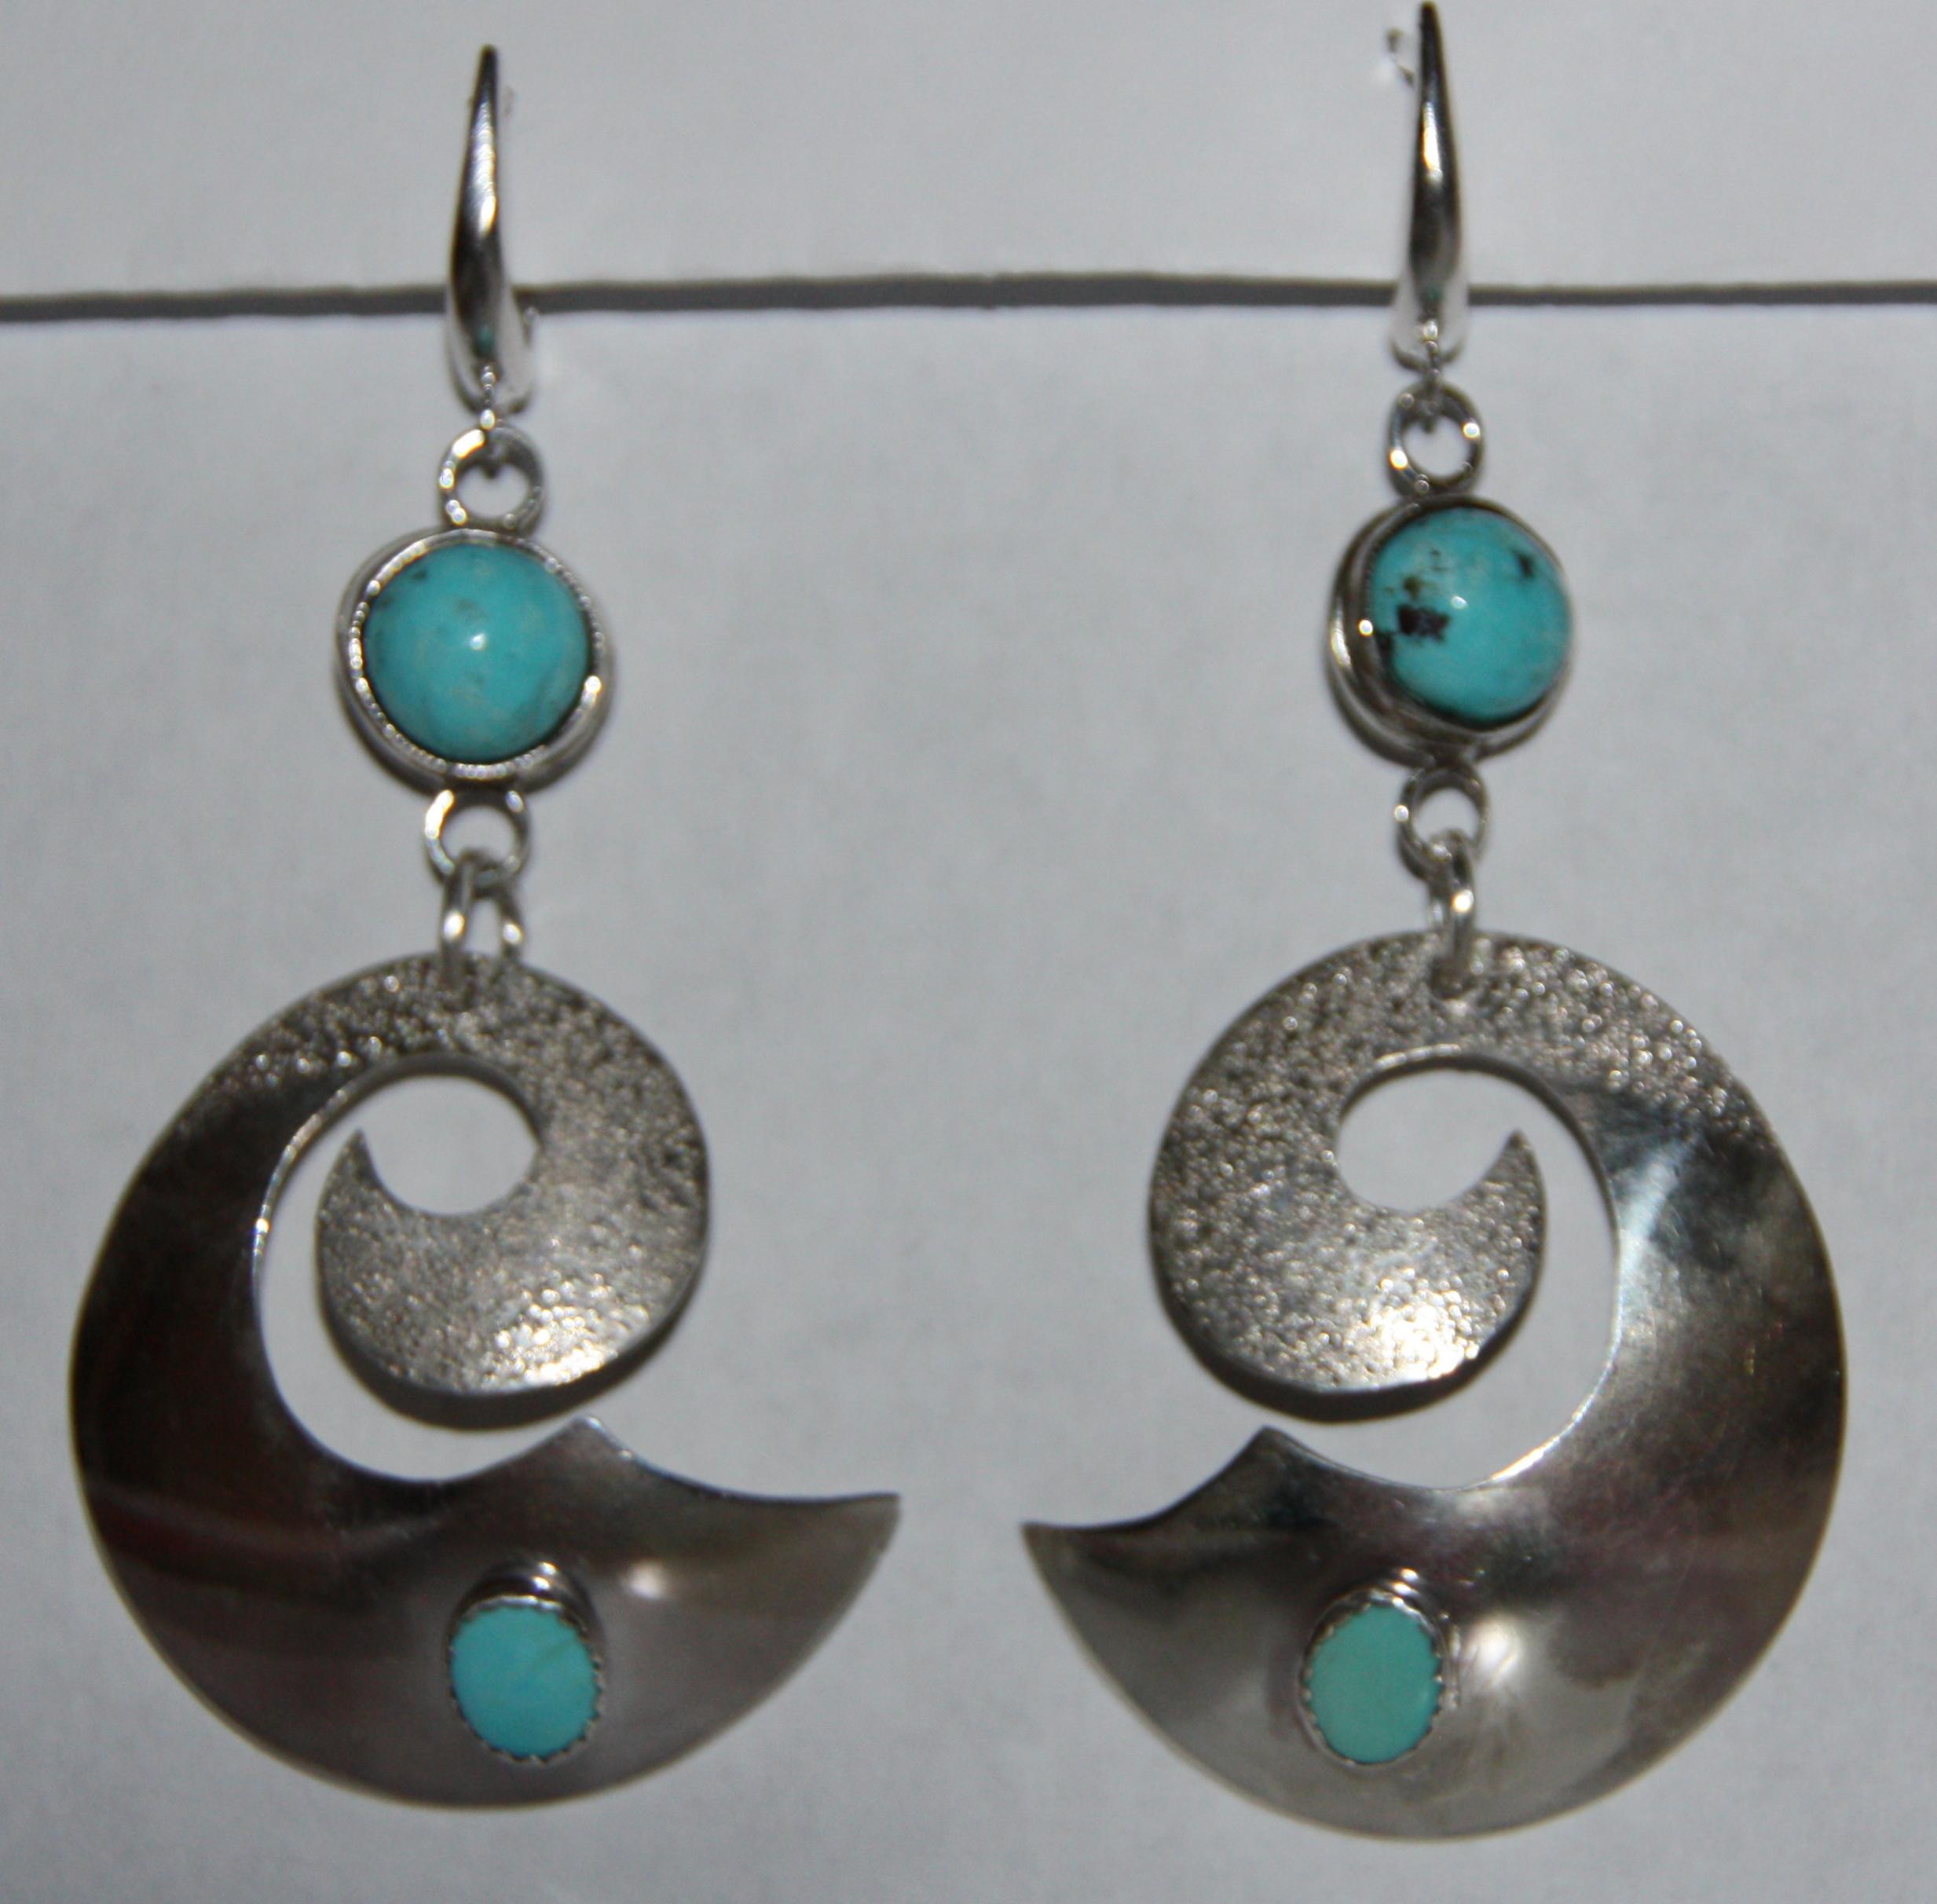 My First Silver Earrings with Turquoise